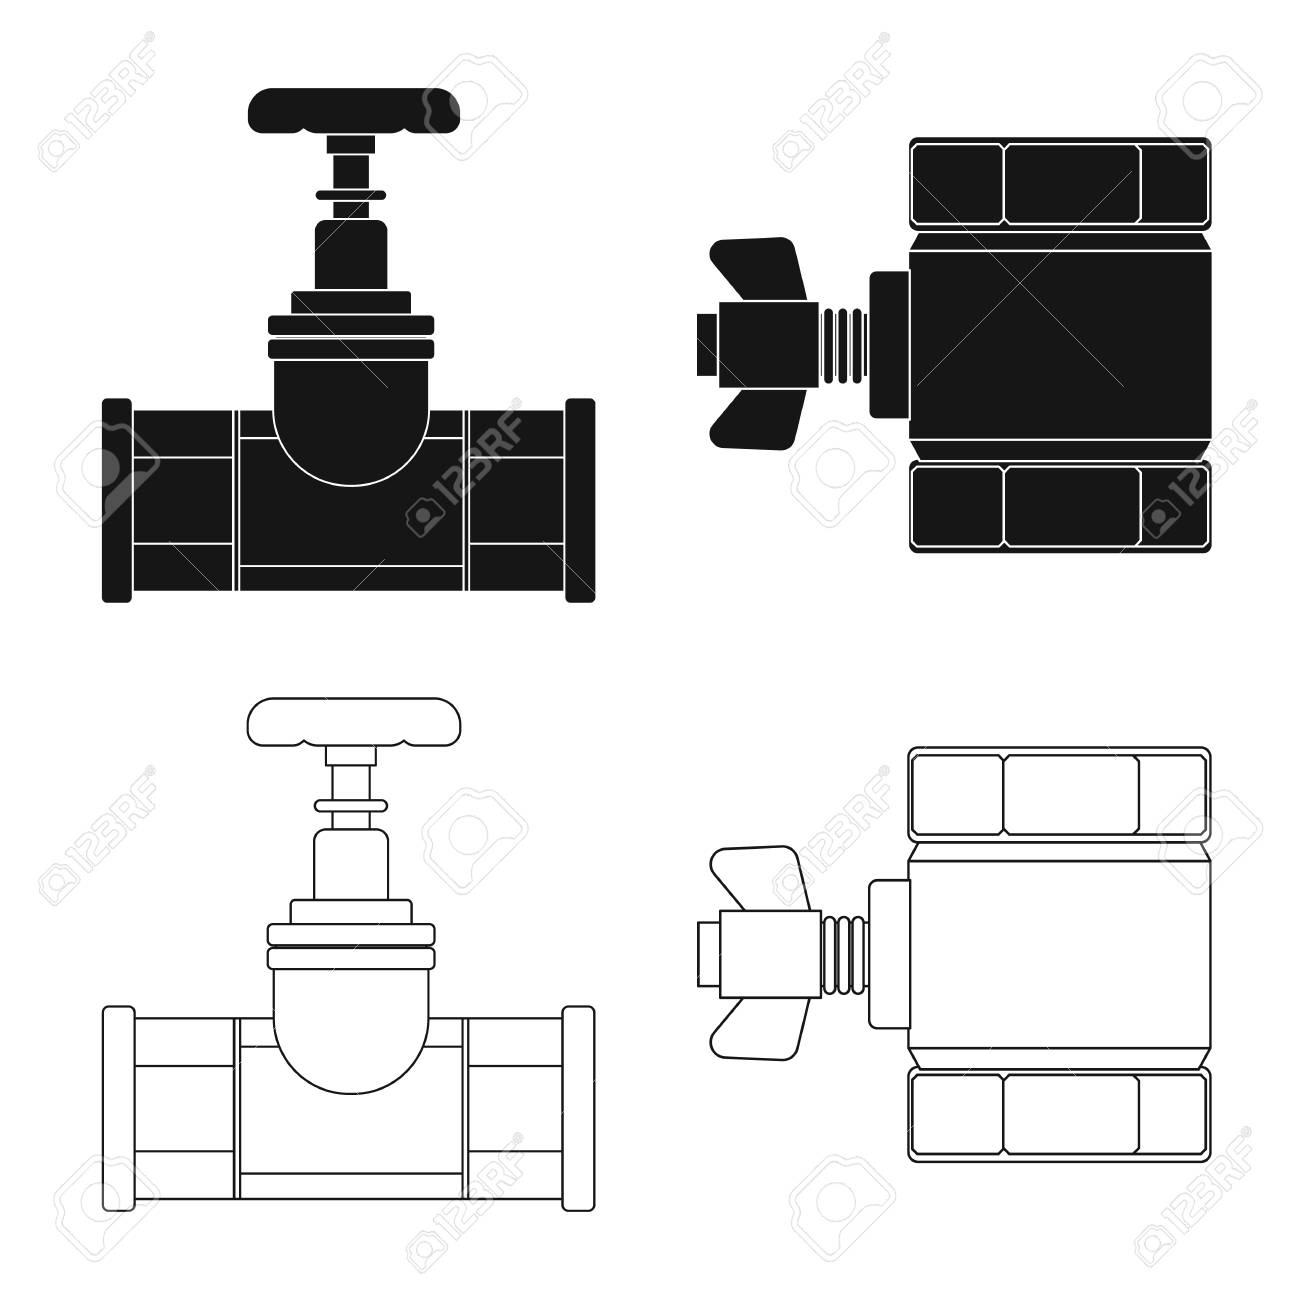 Vector Design Of Pipe And Tube Symbol Set Pipeline Piping Diagram Symbols Pictures Icon For Stock